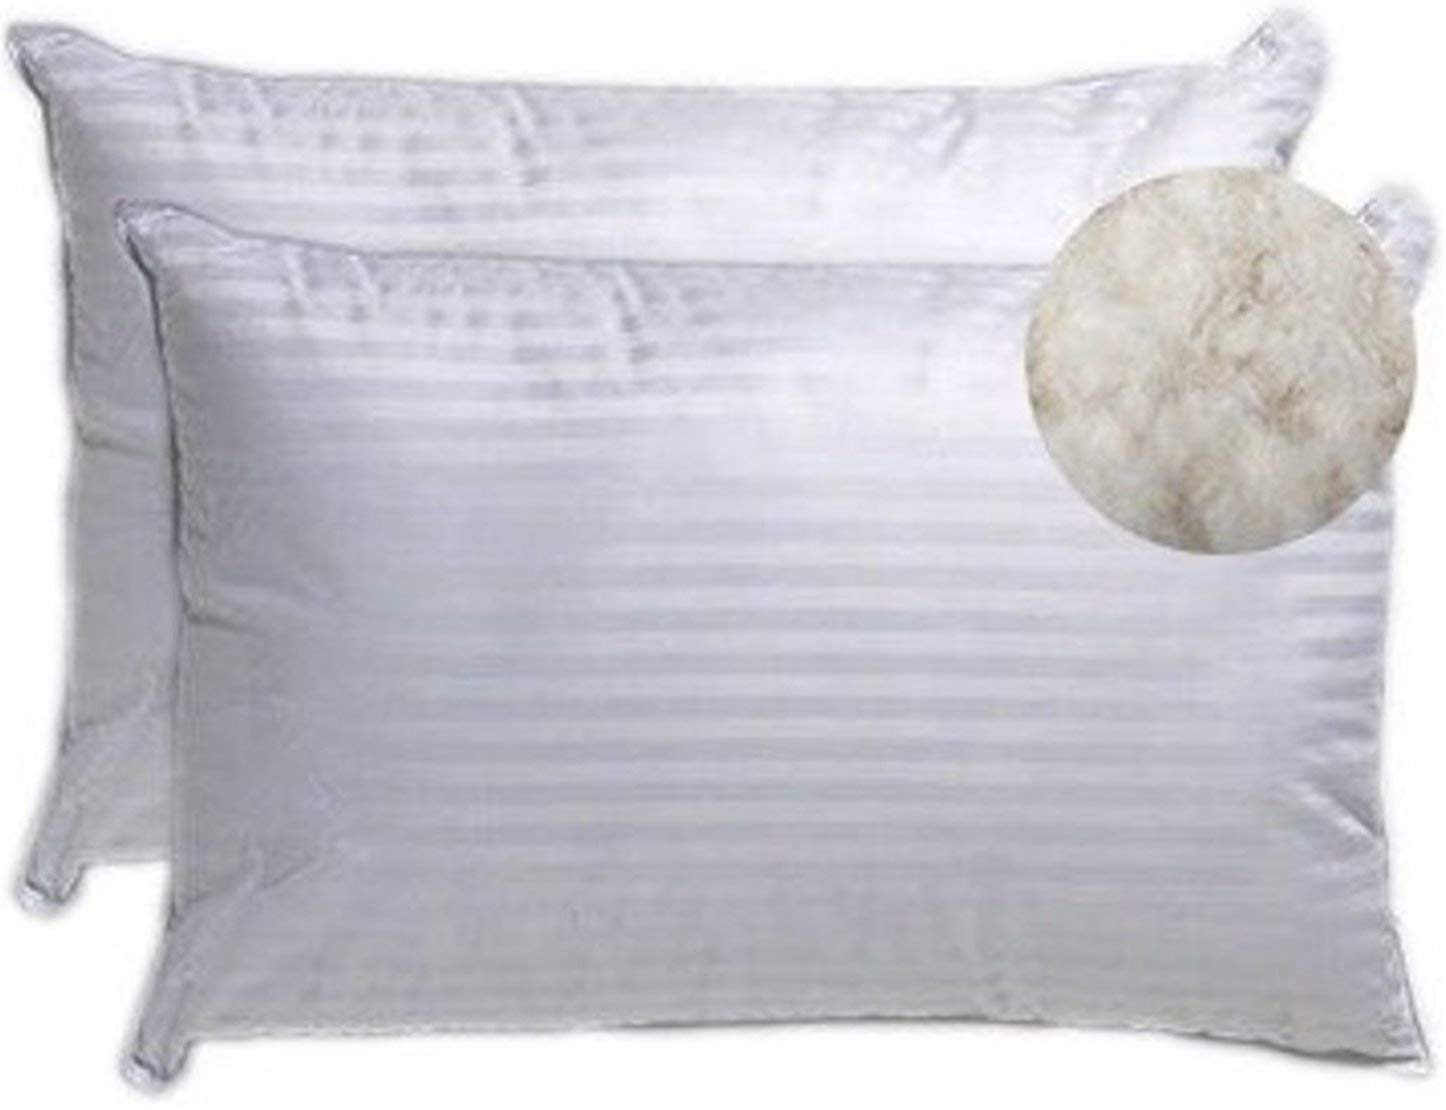 Classic Cotton Pillows - 16 x 24-inch White- Pack of 2